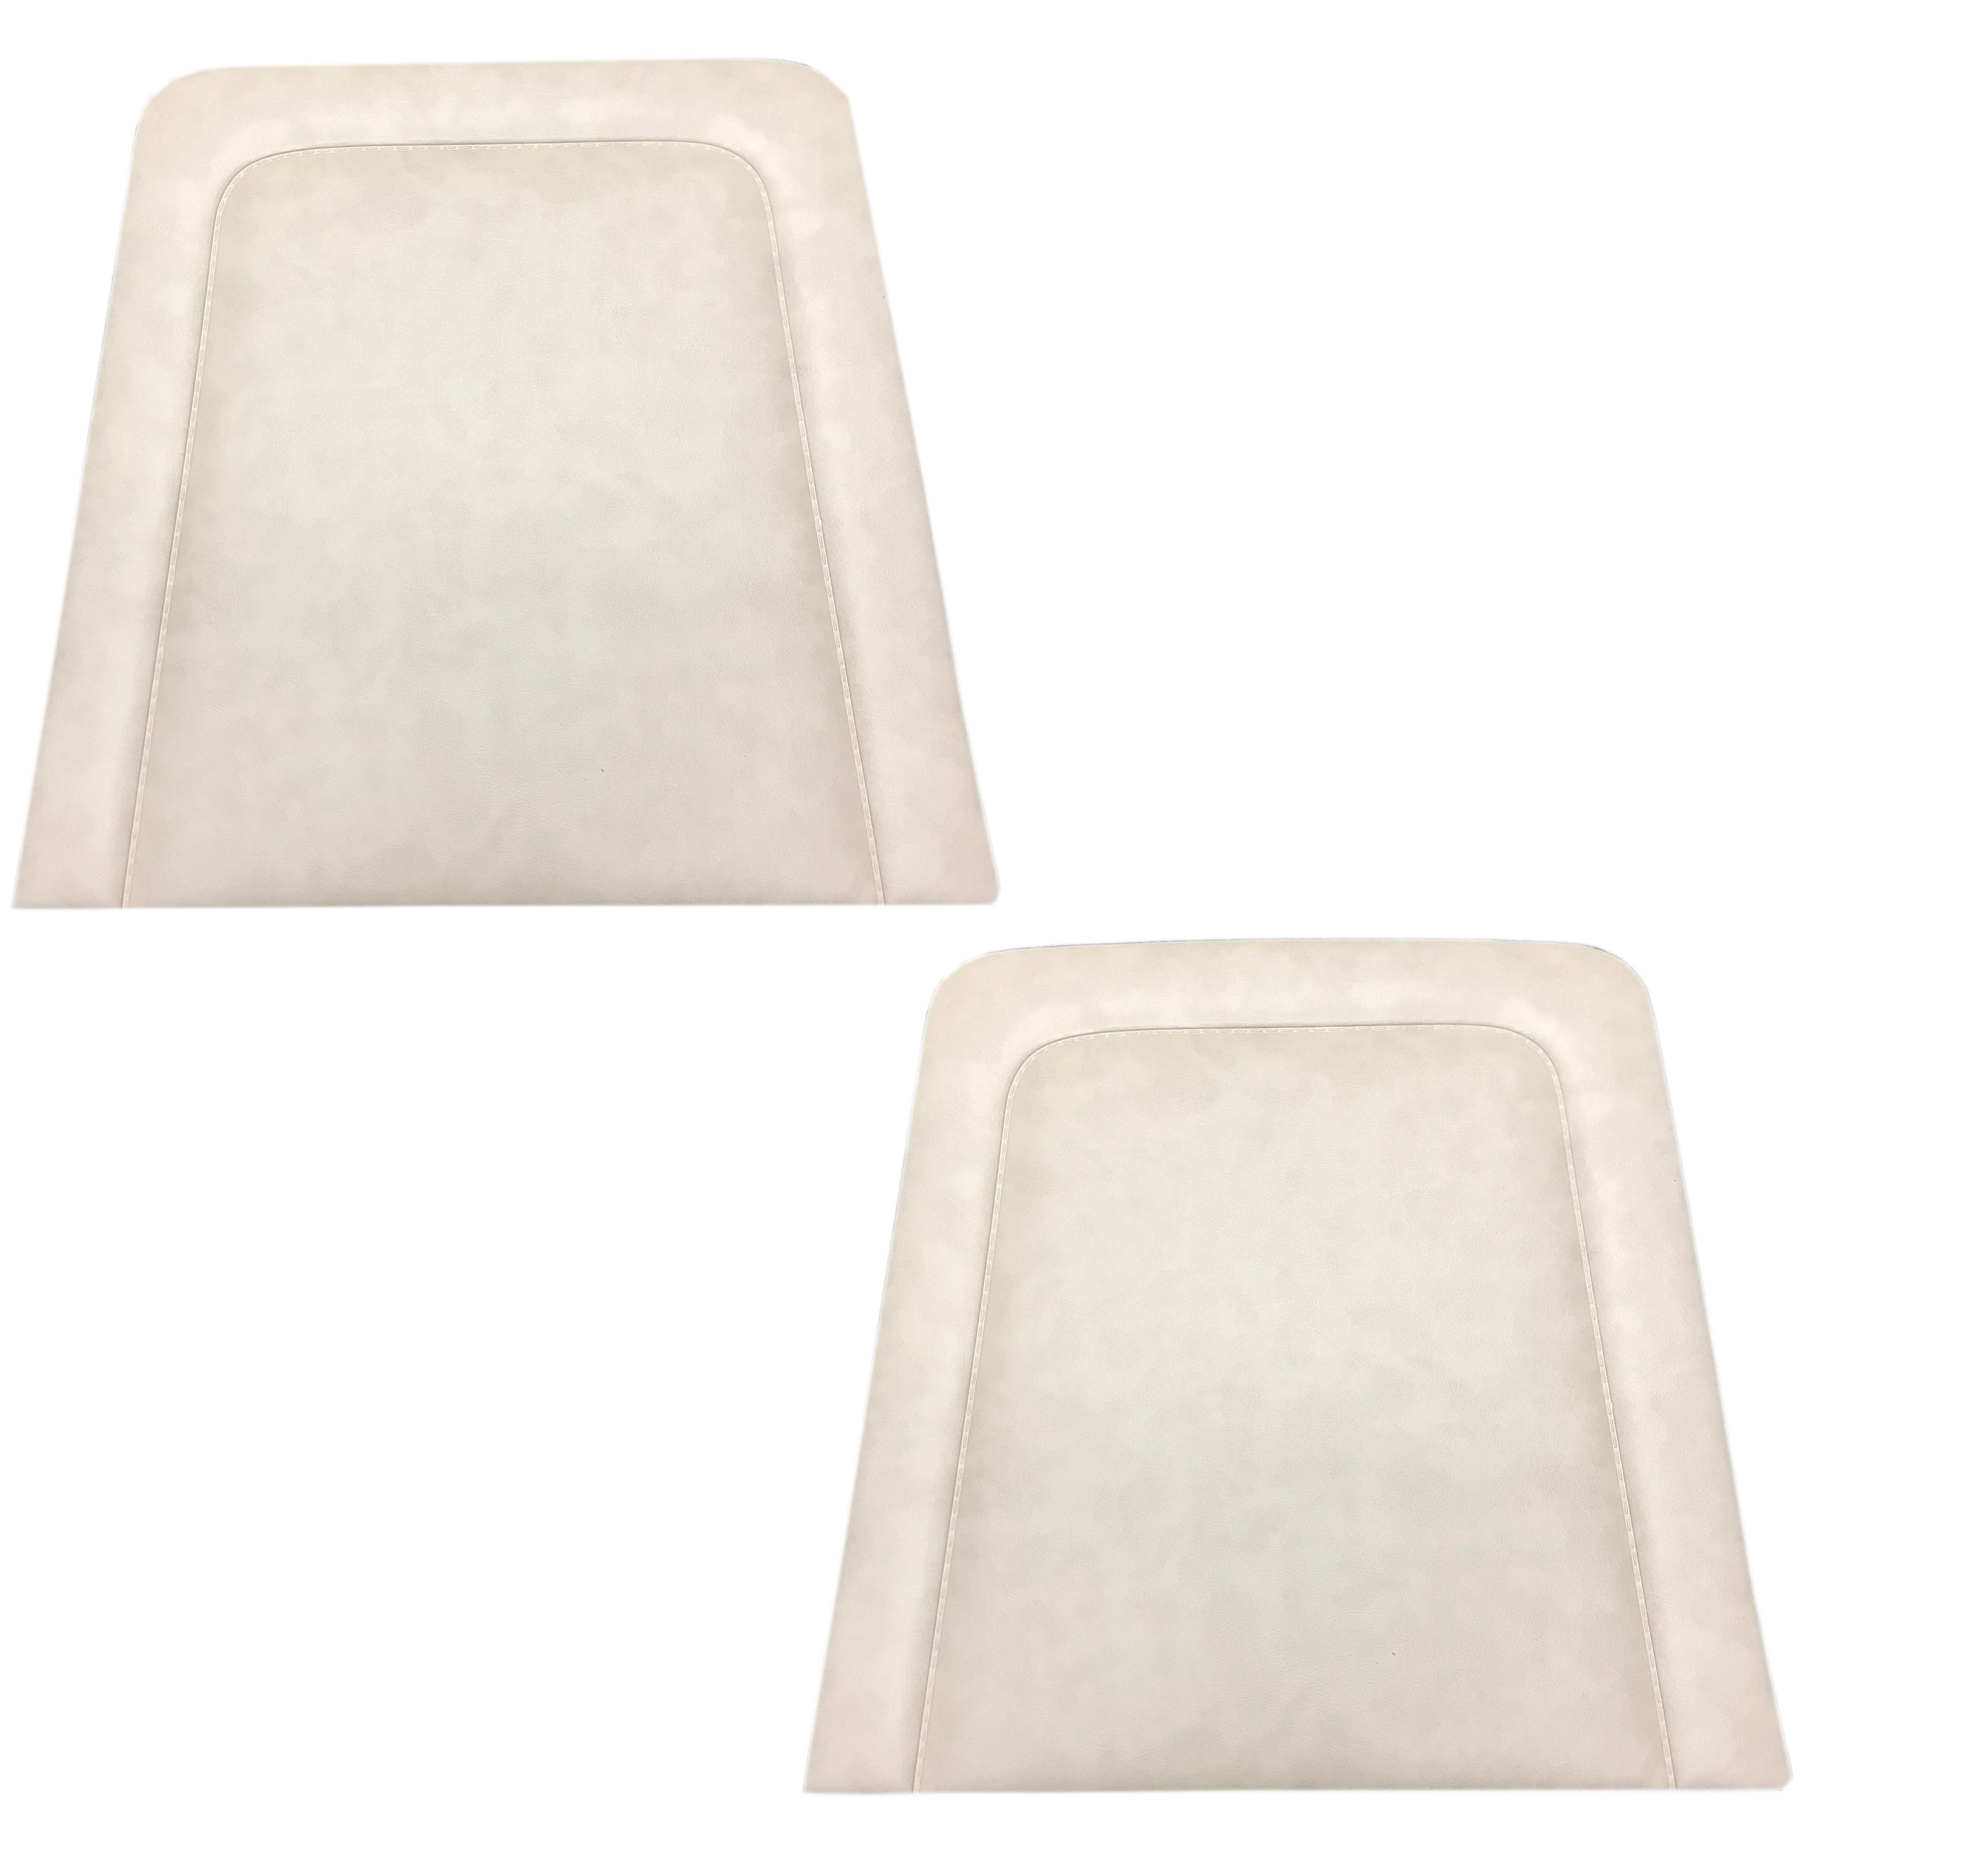 Parchment White Vinyl Back Panels for OEM Front Seats, PAIR